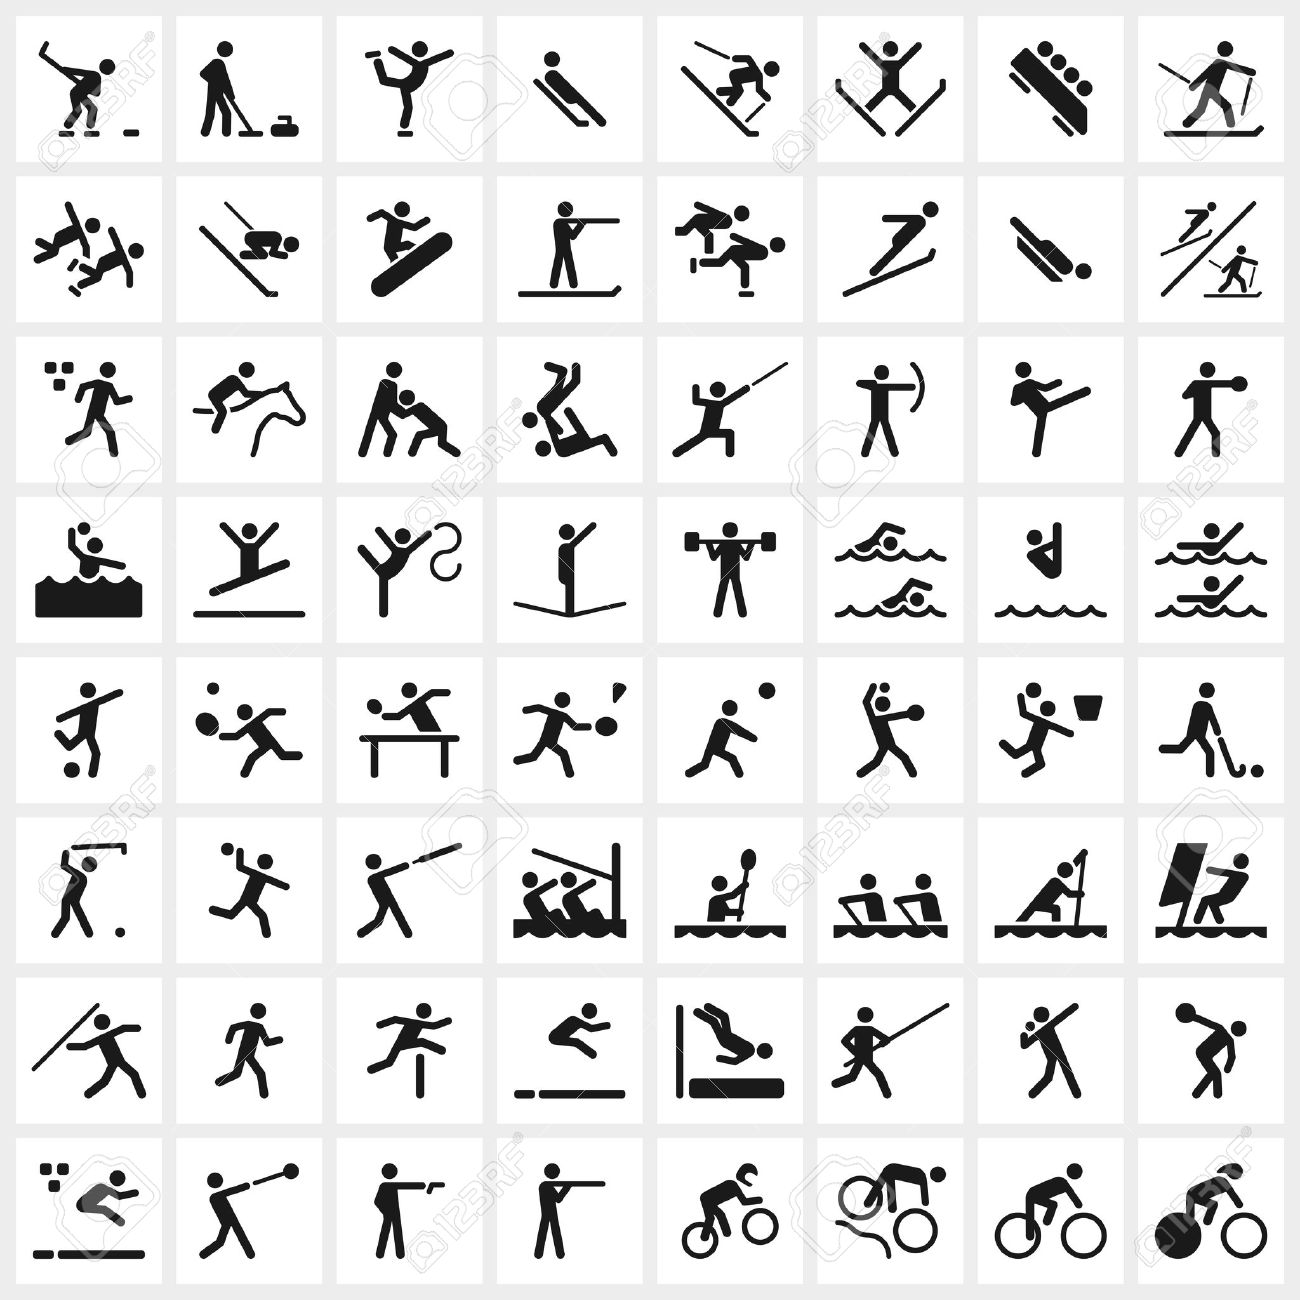 Esl And Efl Resources Olympic Sports Basic Exercise